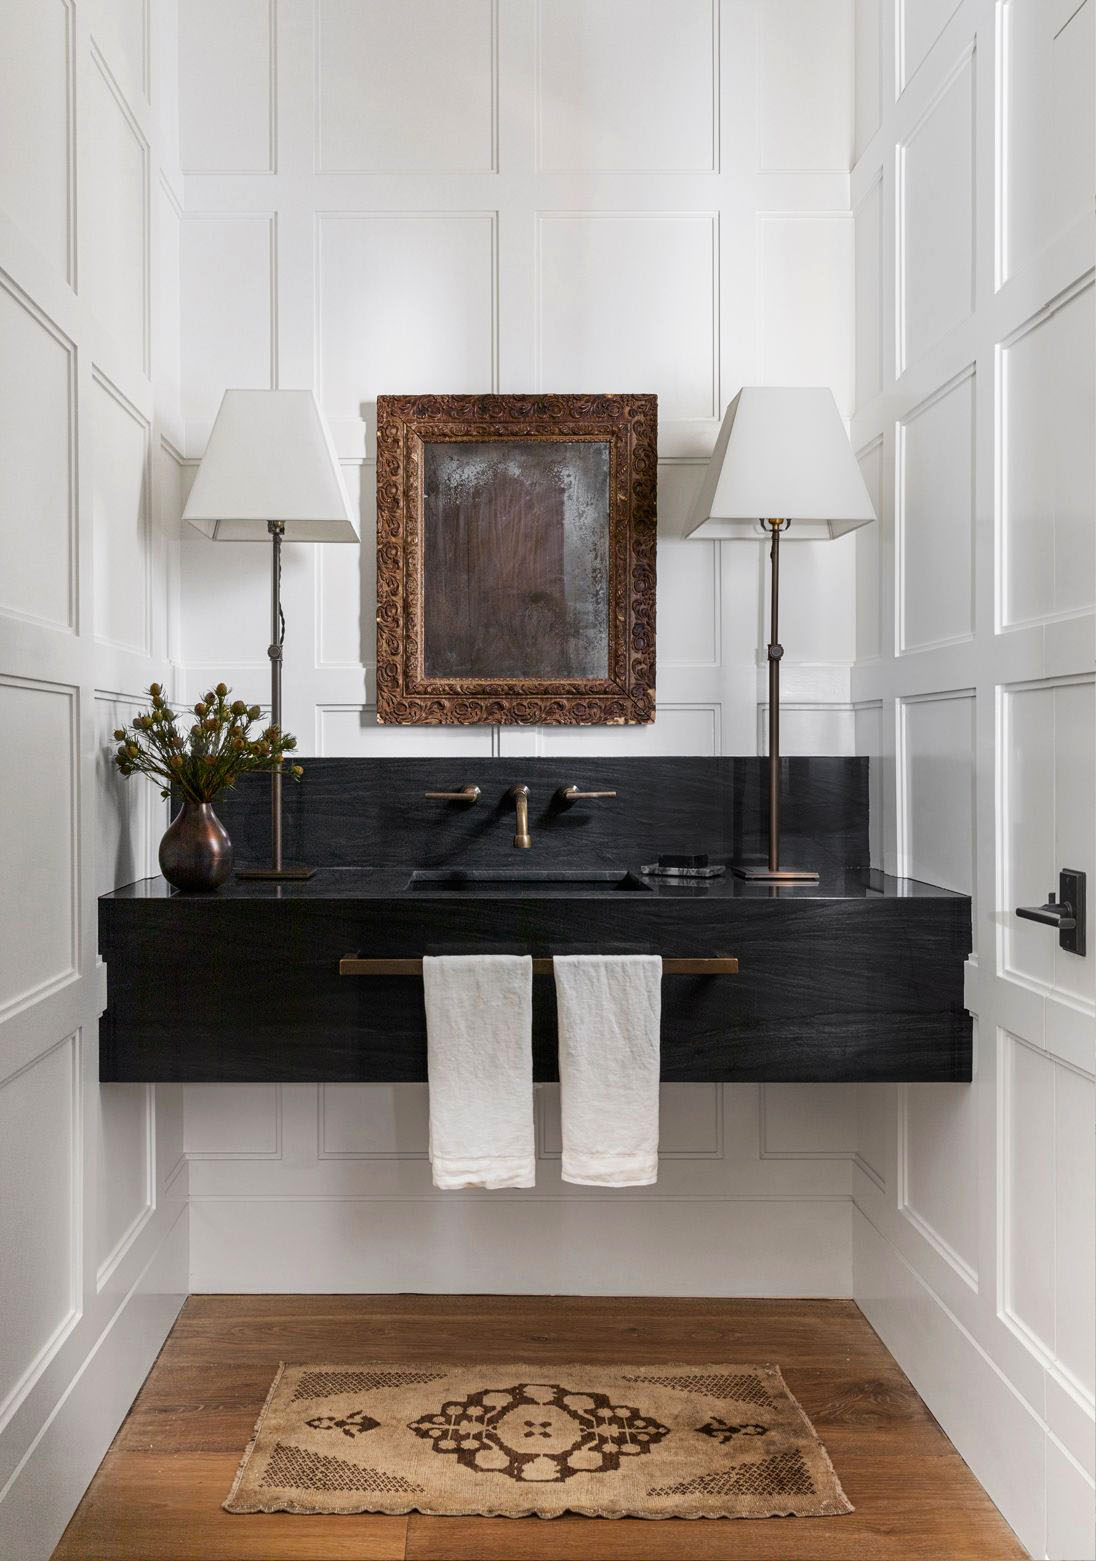 Houston home tour full of warm textures by Marie Flanigan, modern Houston house, powder room design on Thou Swell #powderroom #bathroom #bathroomdesign #powderroomdesign #homedesign #homedecor